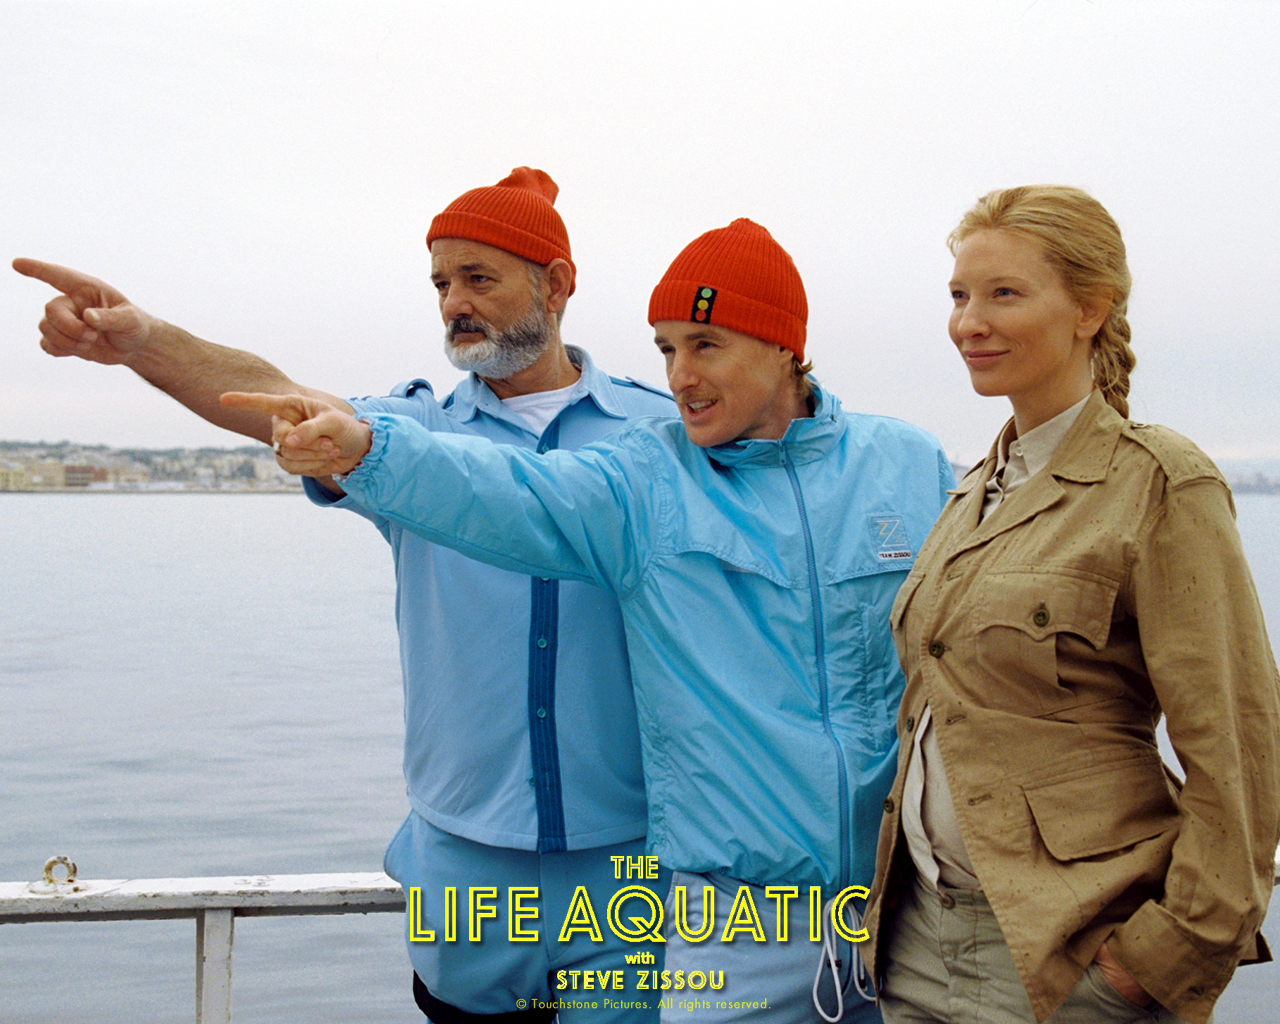 http://1.bp.blogspot.com/-6GDhLcuYK8U/TyHQubEla5I/AAAAAAAAAz0/jmGQ34t-I5Y/s1600/cate_blanchett_the_life_aquatic_with_steve_zissou_bill_murray_desktop_1280x1024_wallpaper-162034.jpg